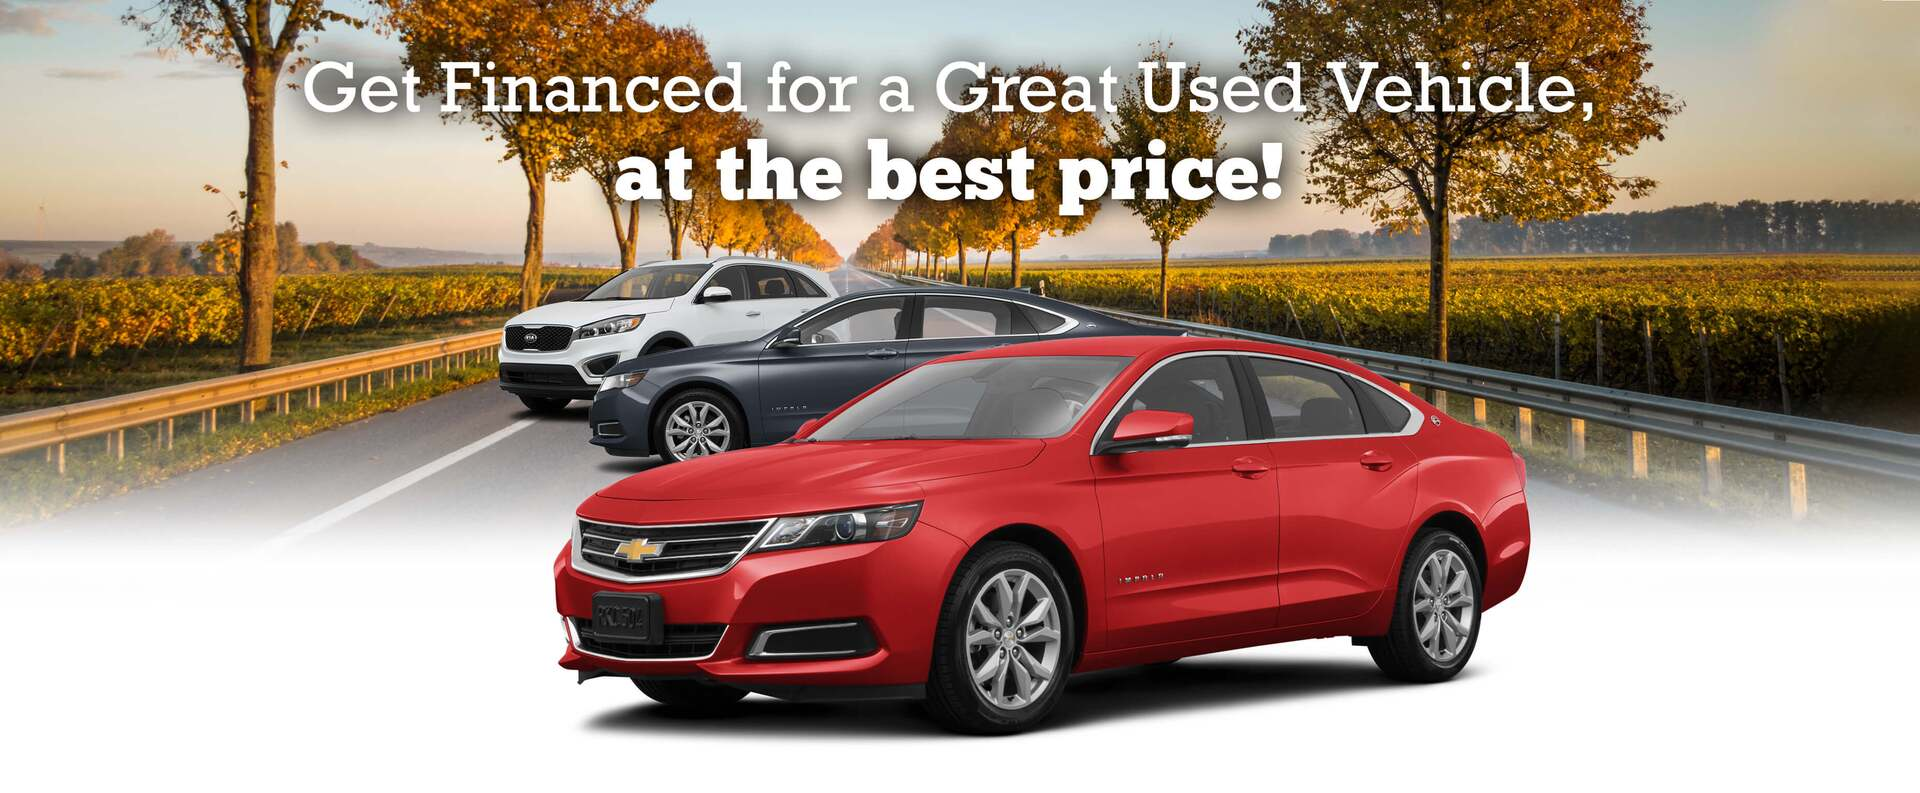 Used Cars For Sale In Dothan Al Auto Smart Bad Credit Car Loans